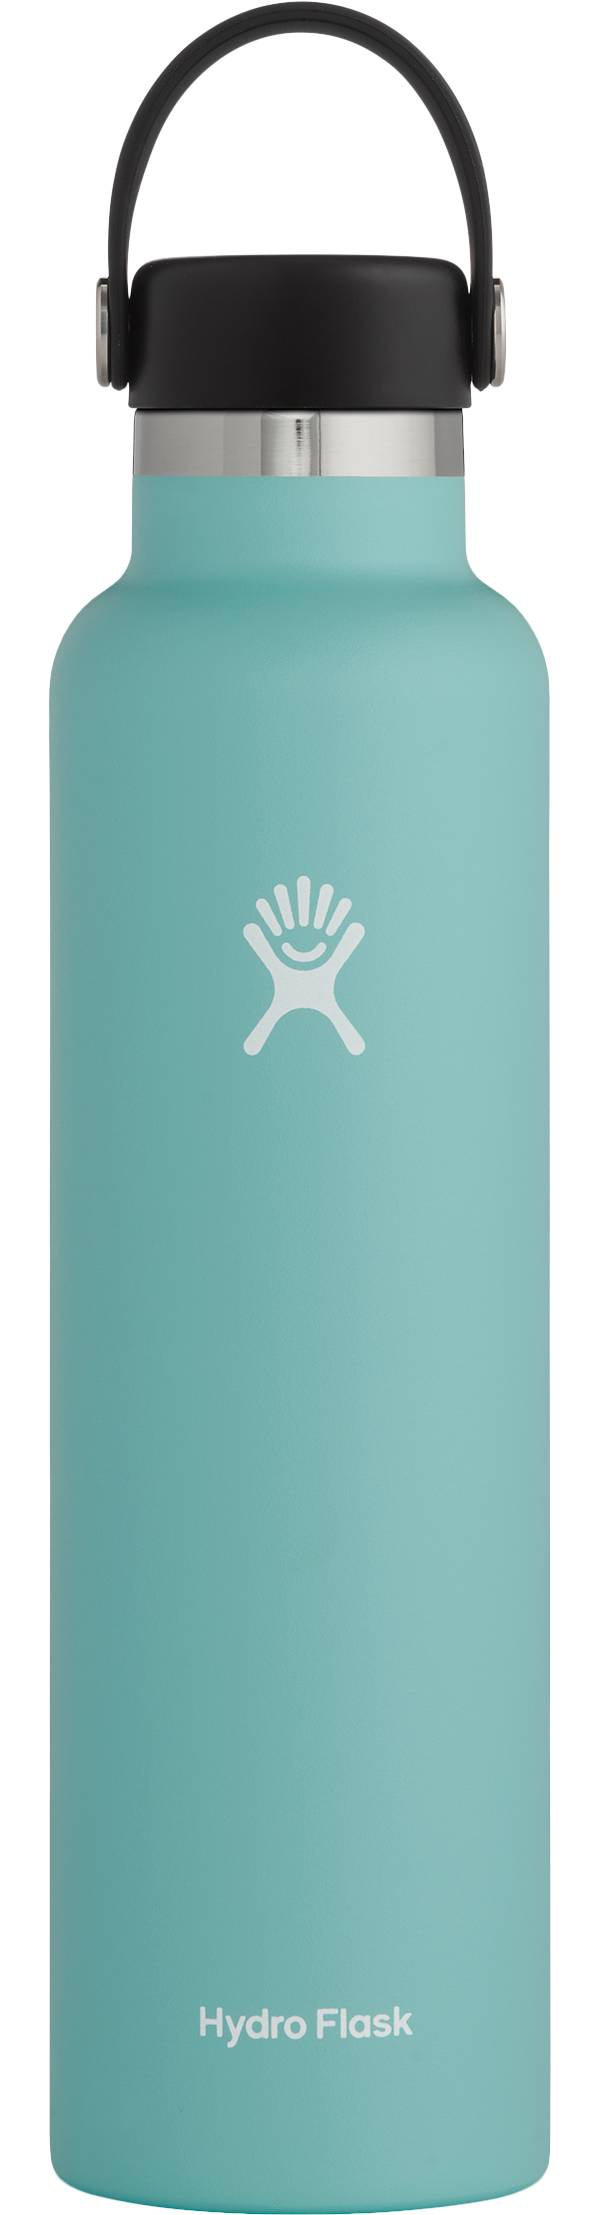 Hydro Flask 24 oz Standard Mouth Bottle product image